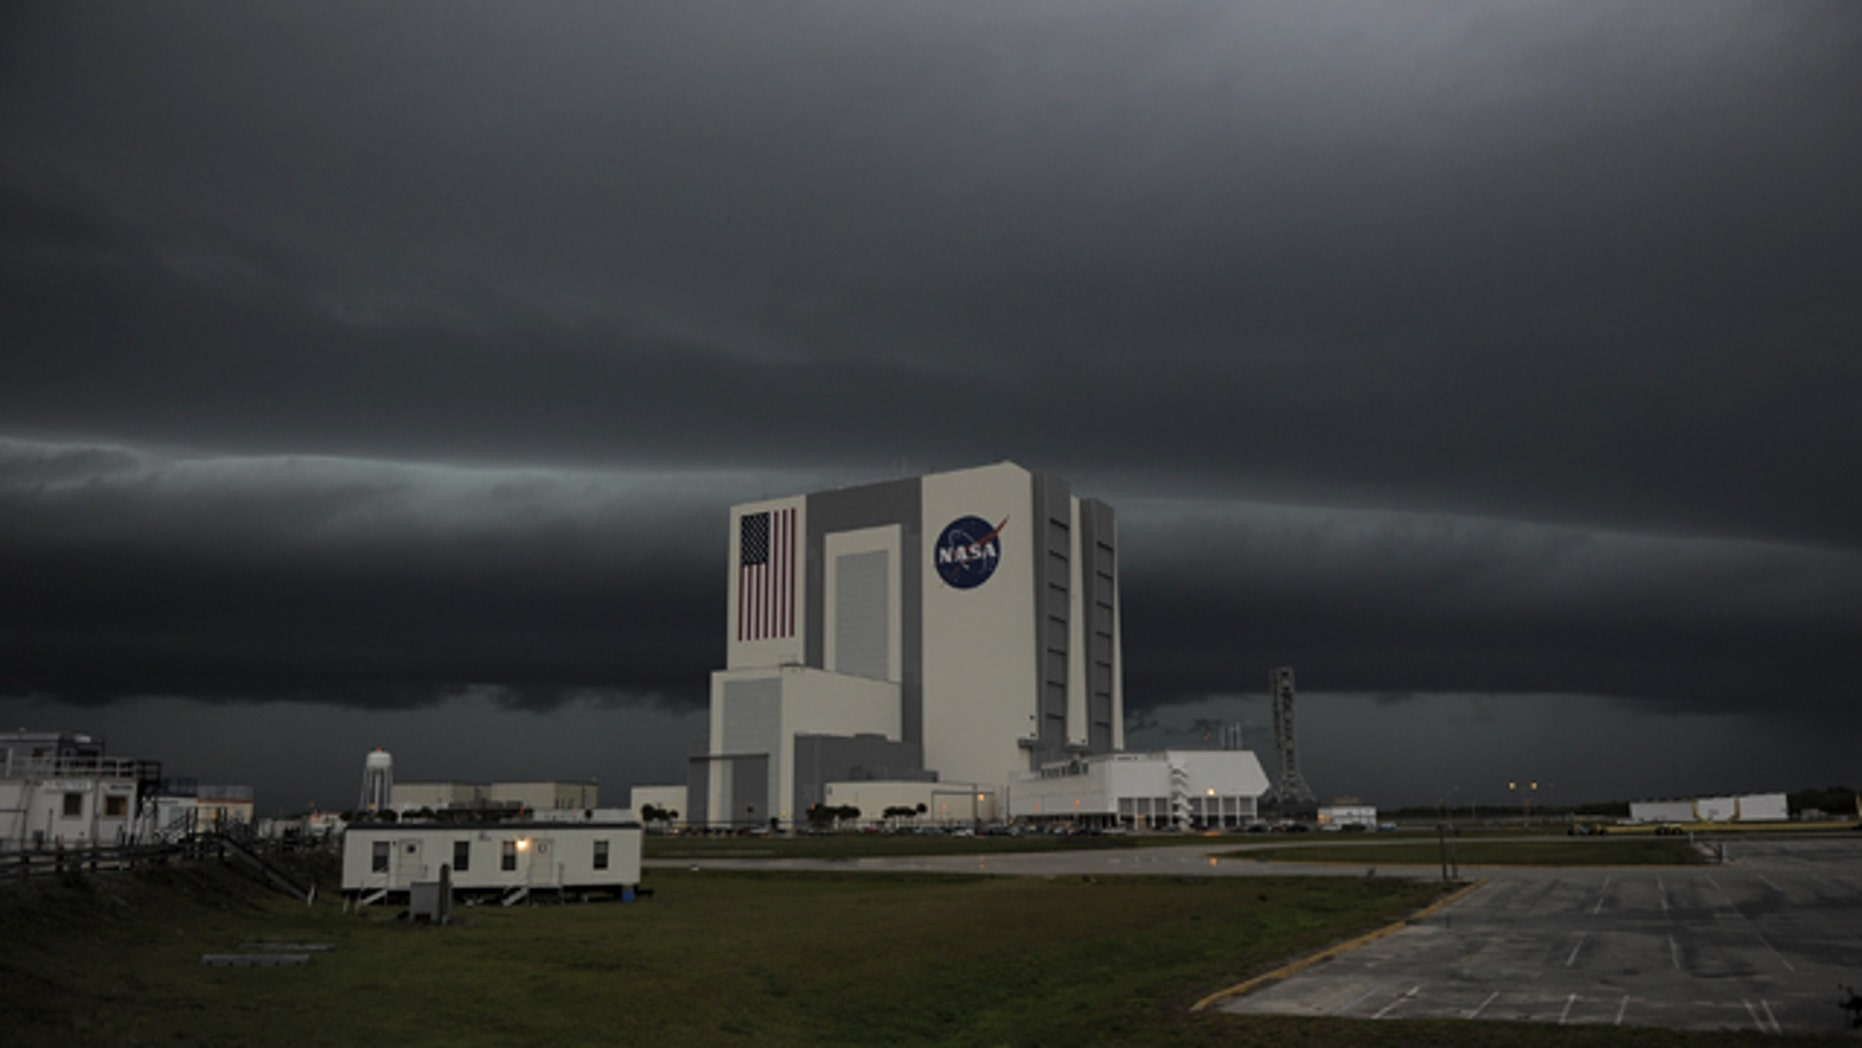 Severe storms darken the skies over Kennedy Space Center in Florida Thursday, causing delays in space shuttle Endeavours STS-134 mission launch dress rehearsal.